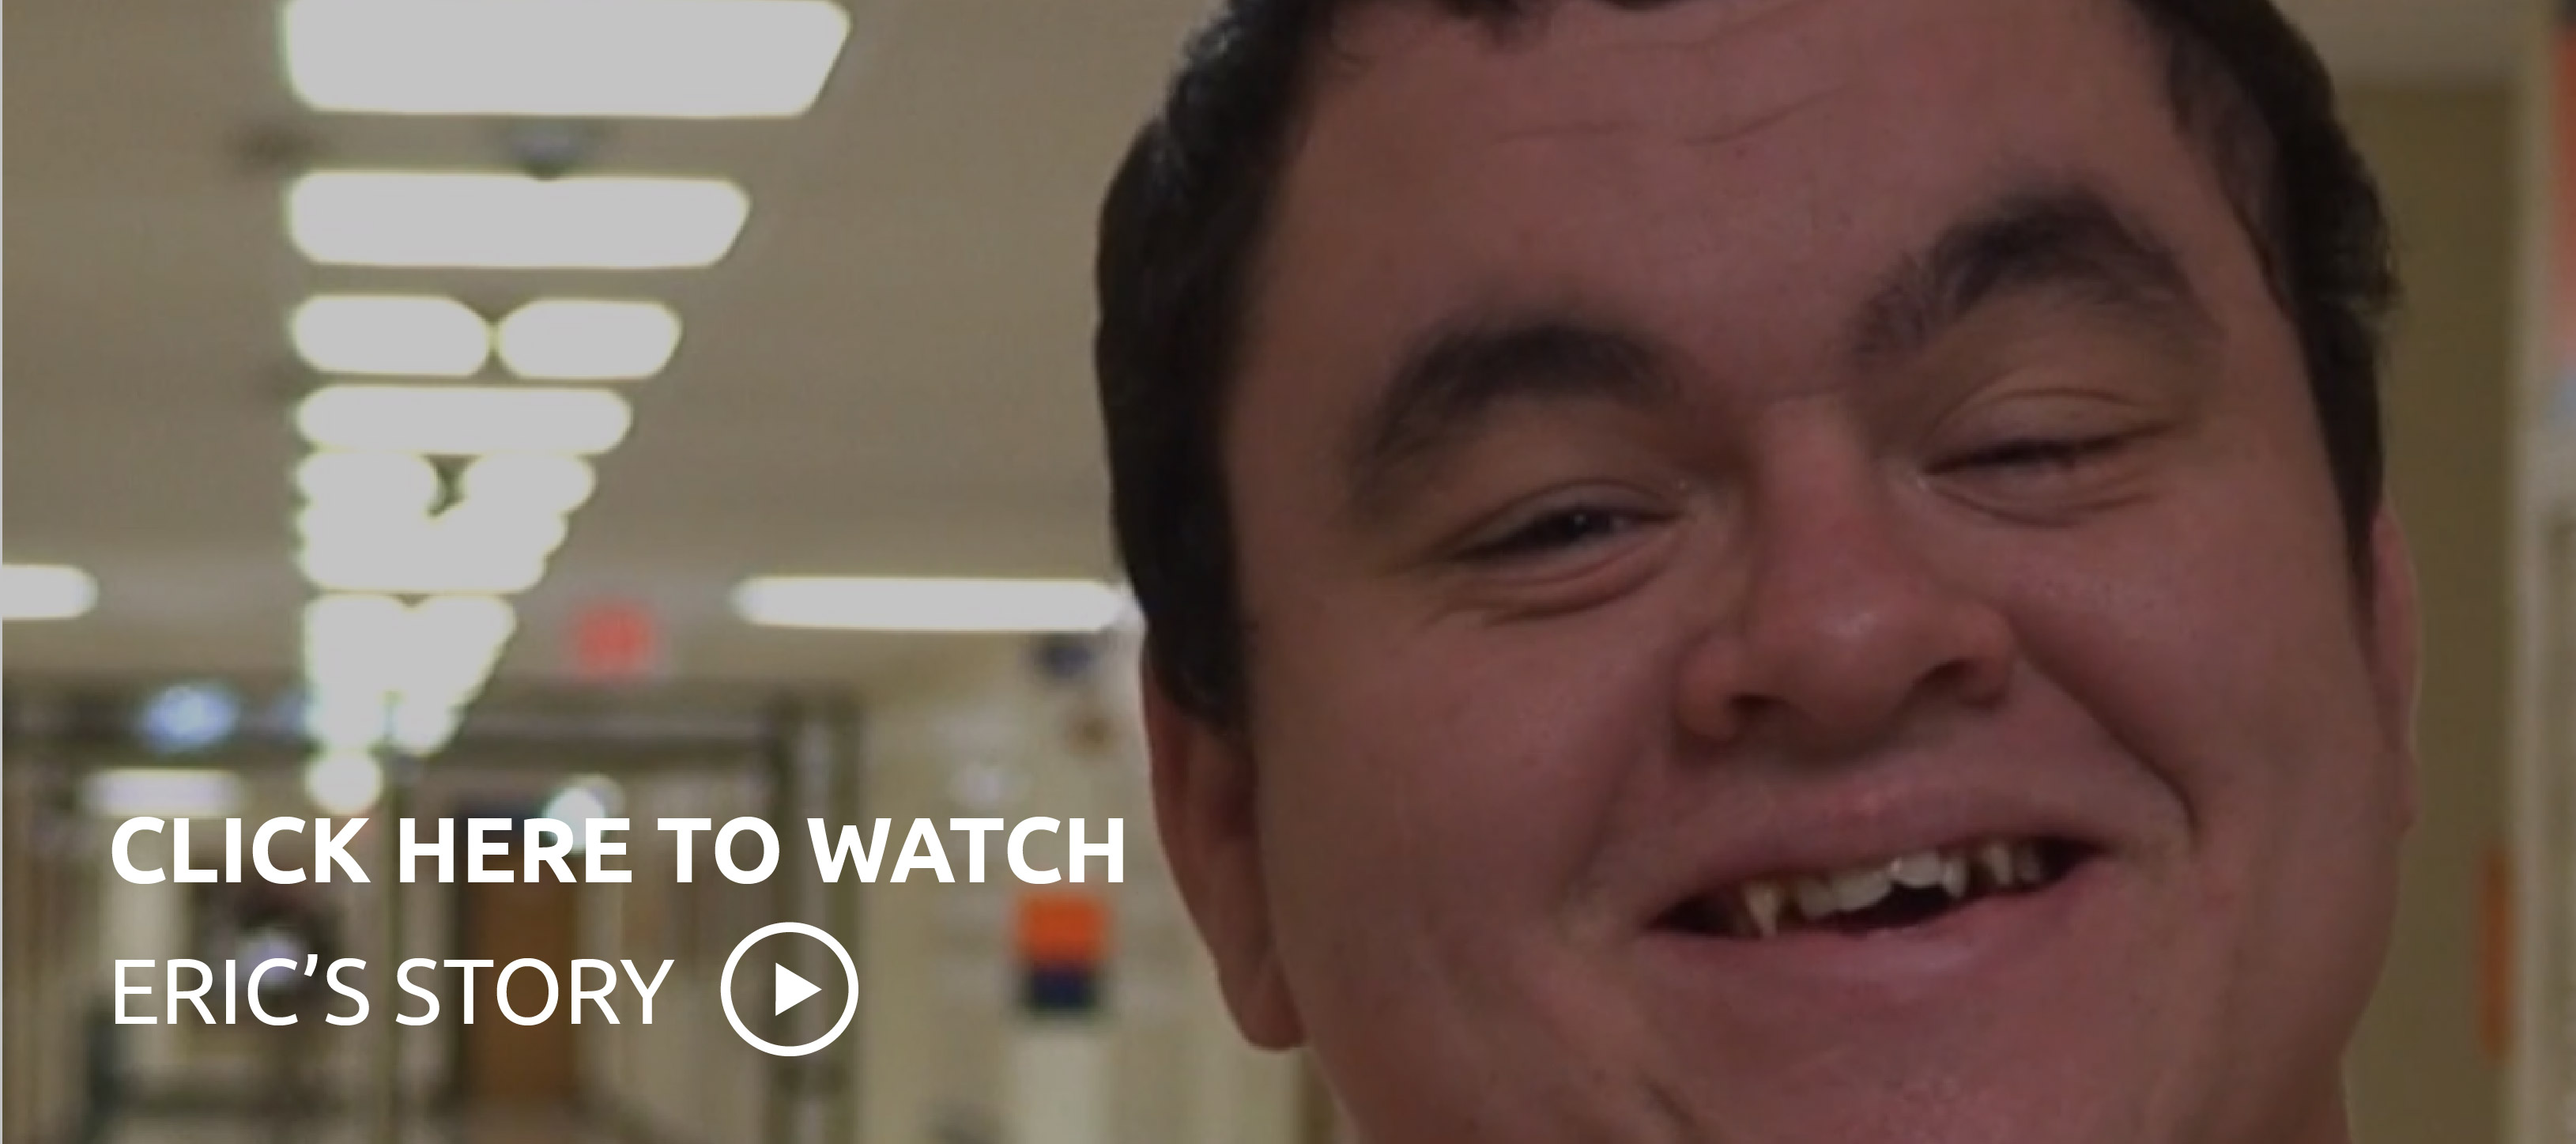 Watch Eric's Story